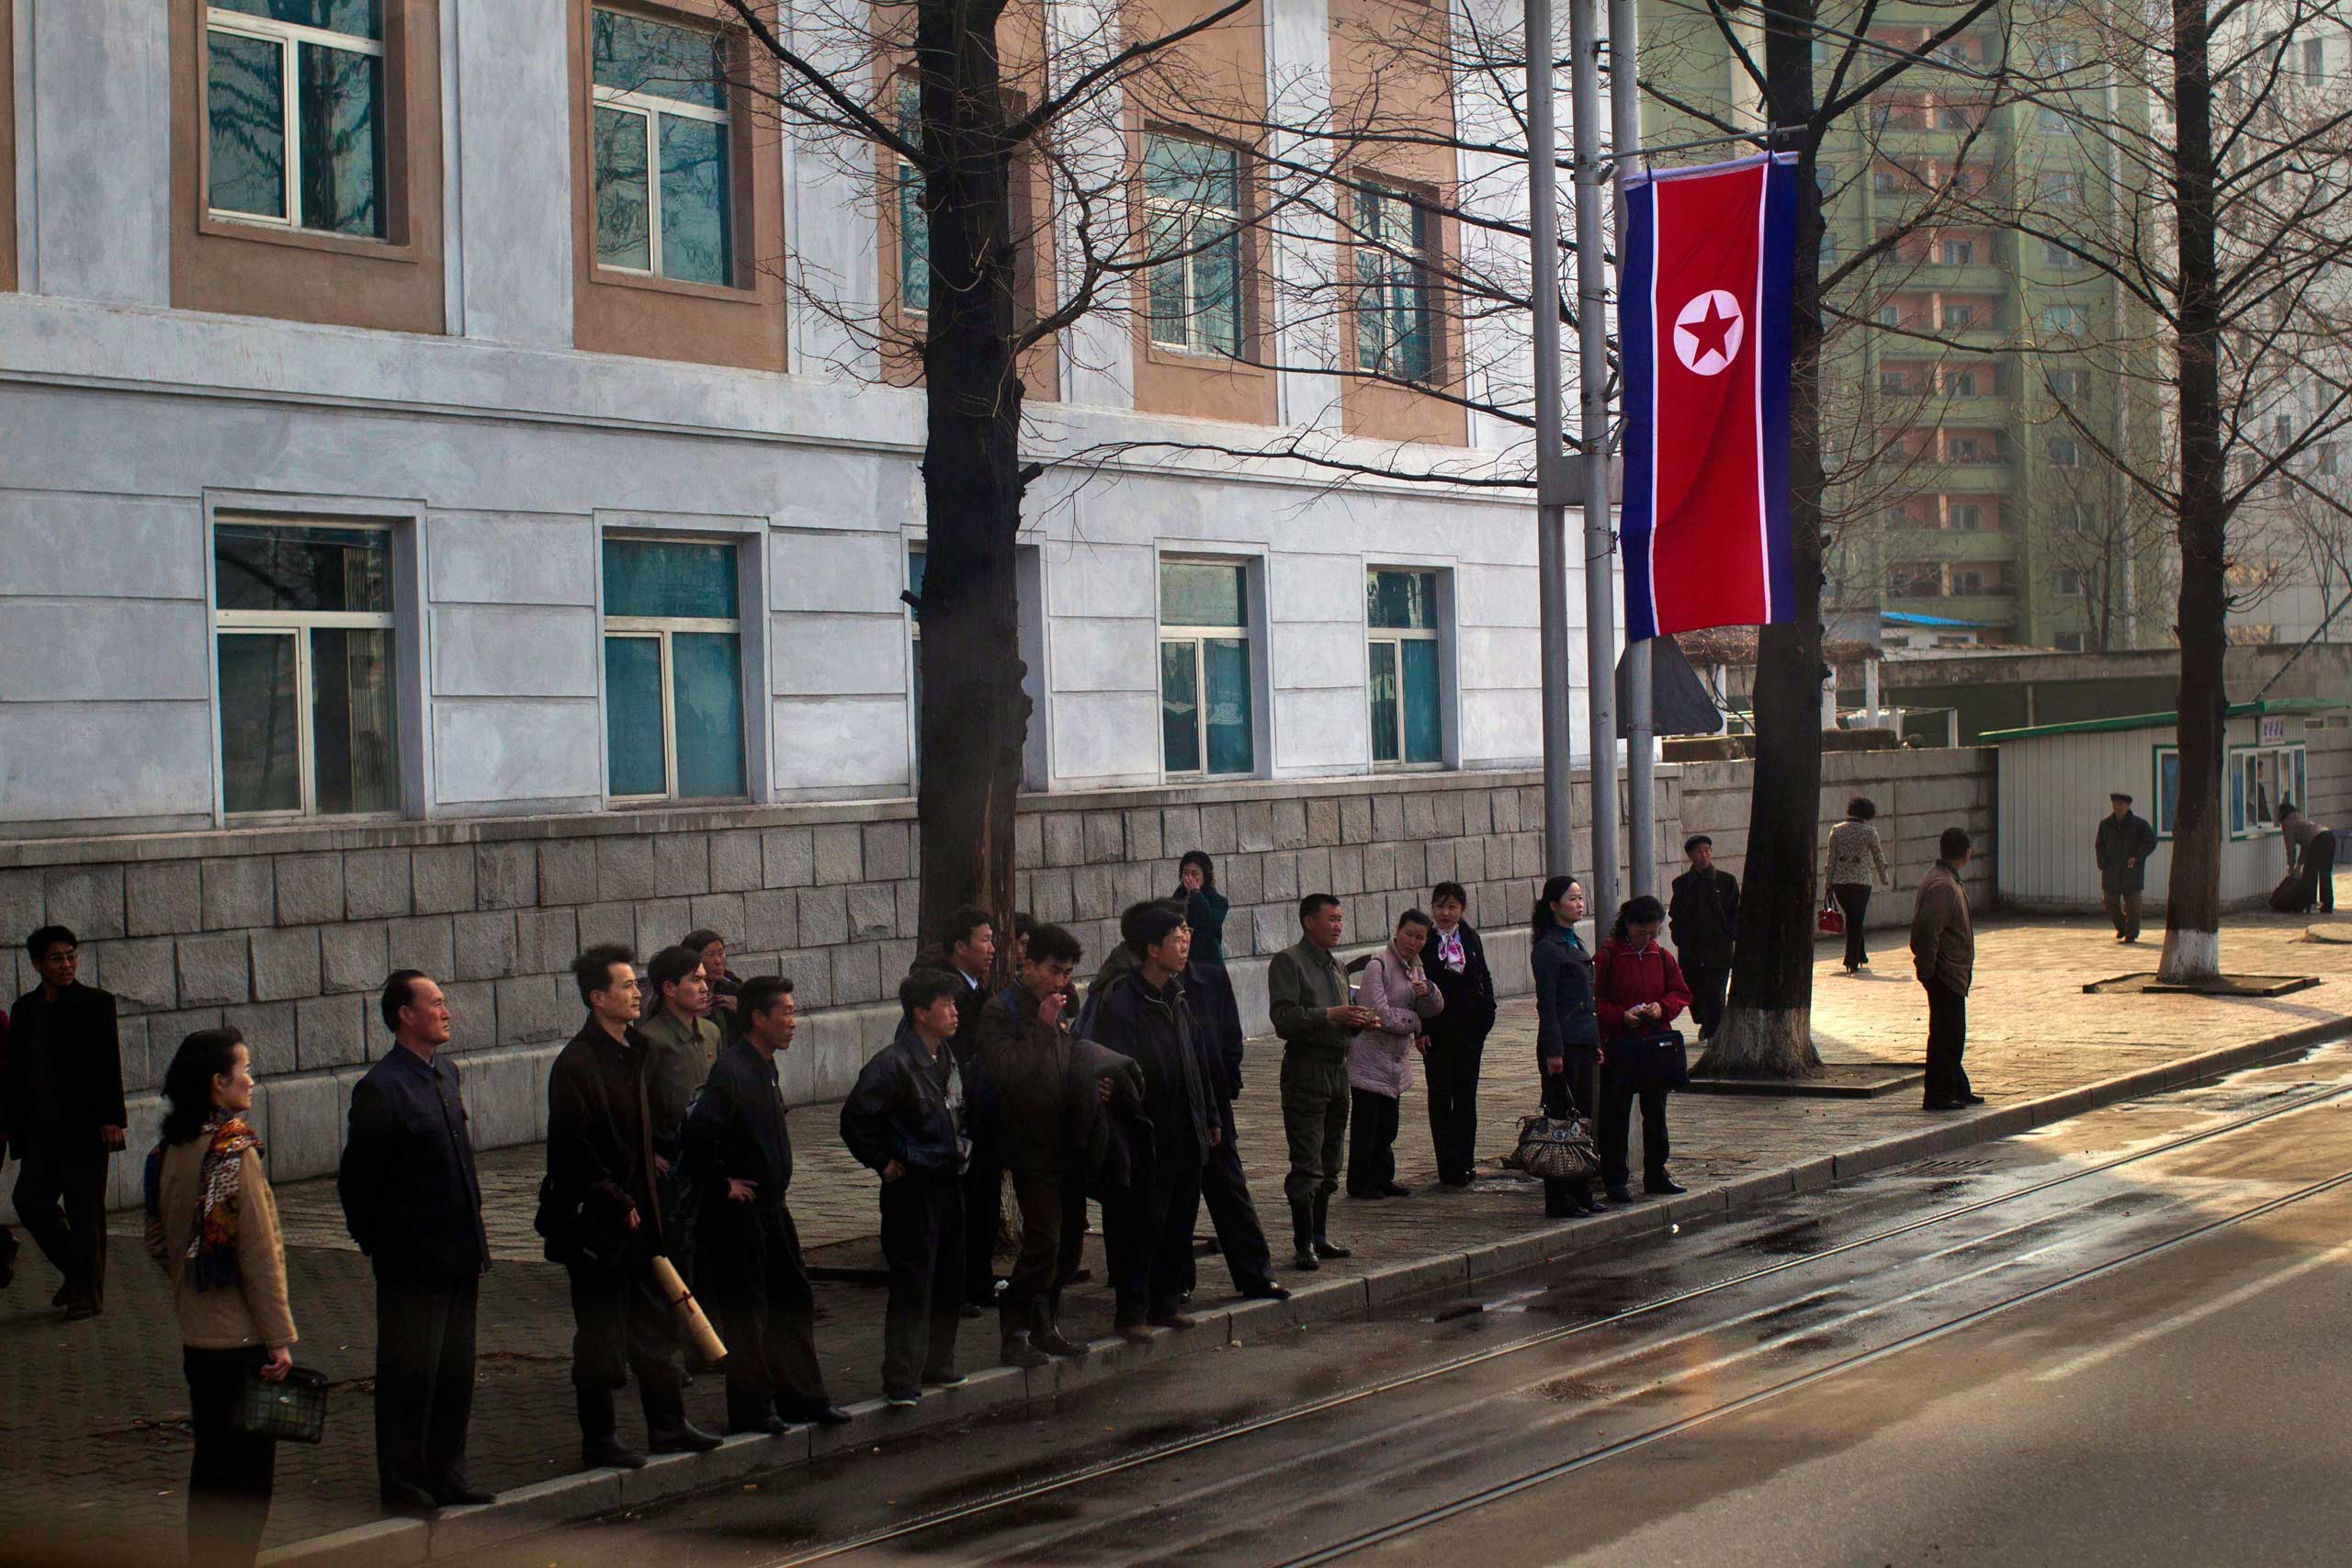 April 11, 2012. Under a North Korean flag, residents of Pyongyang wait for public transportation.